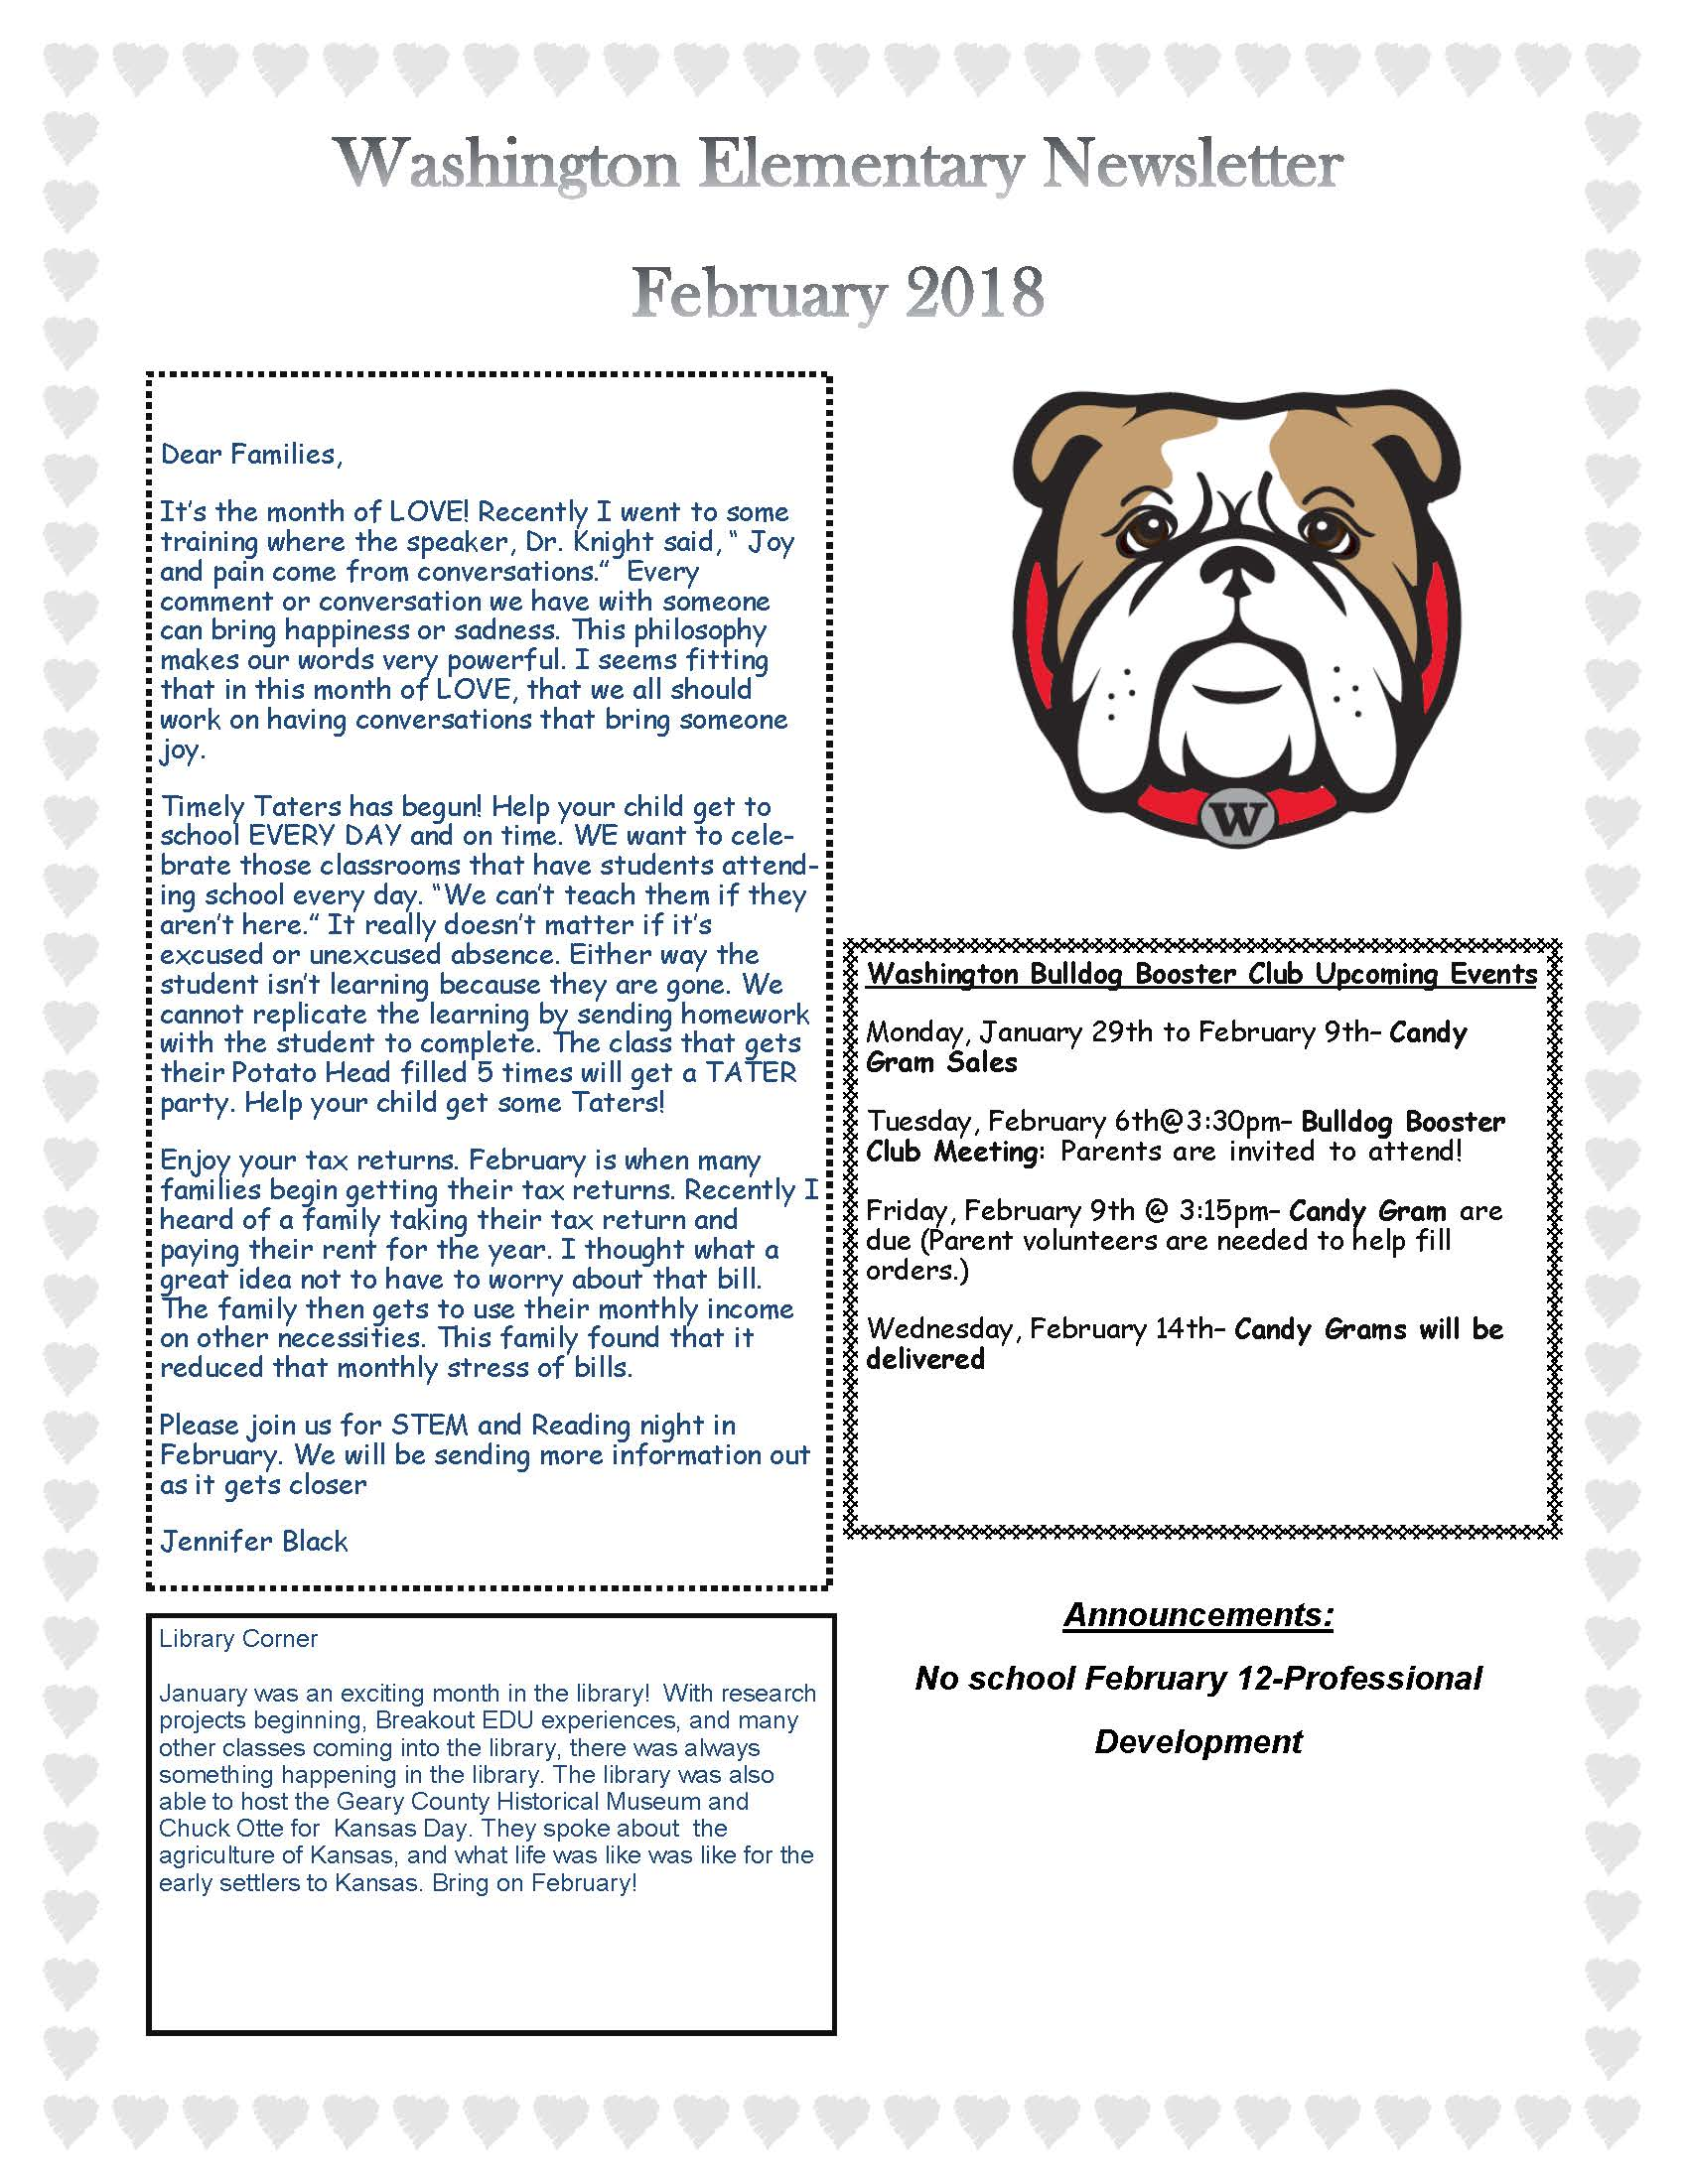 February 2018 Newsletter Page 1